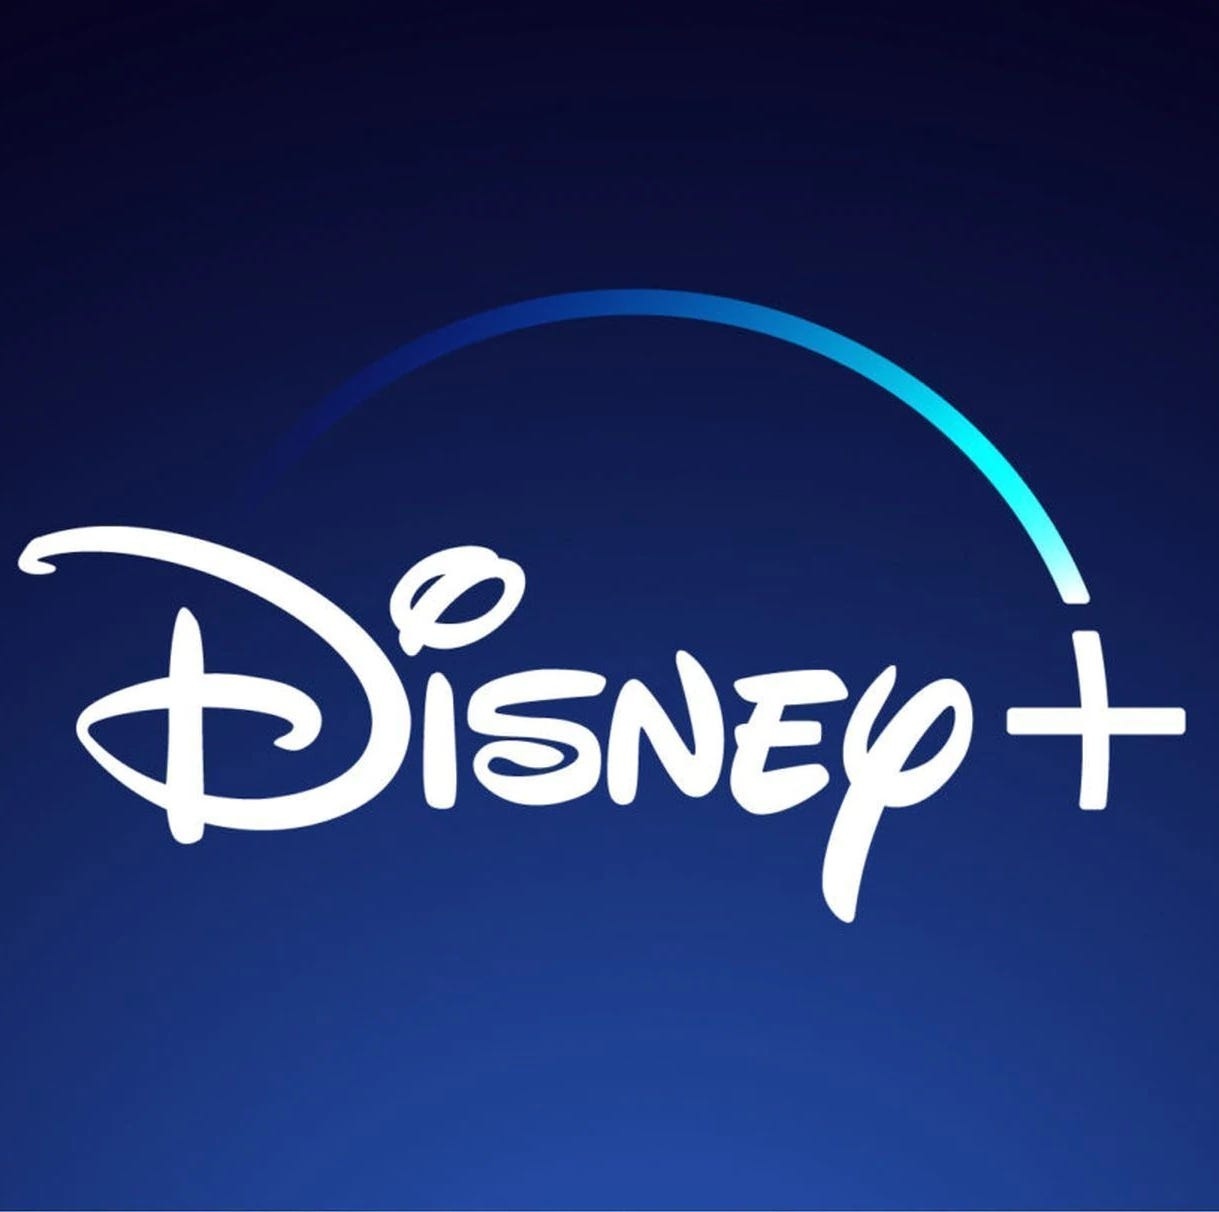 Disney+ has announced that the streaming service will launch Nov. 12 for $6.99 per month.